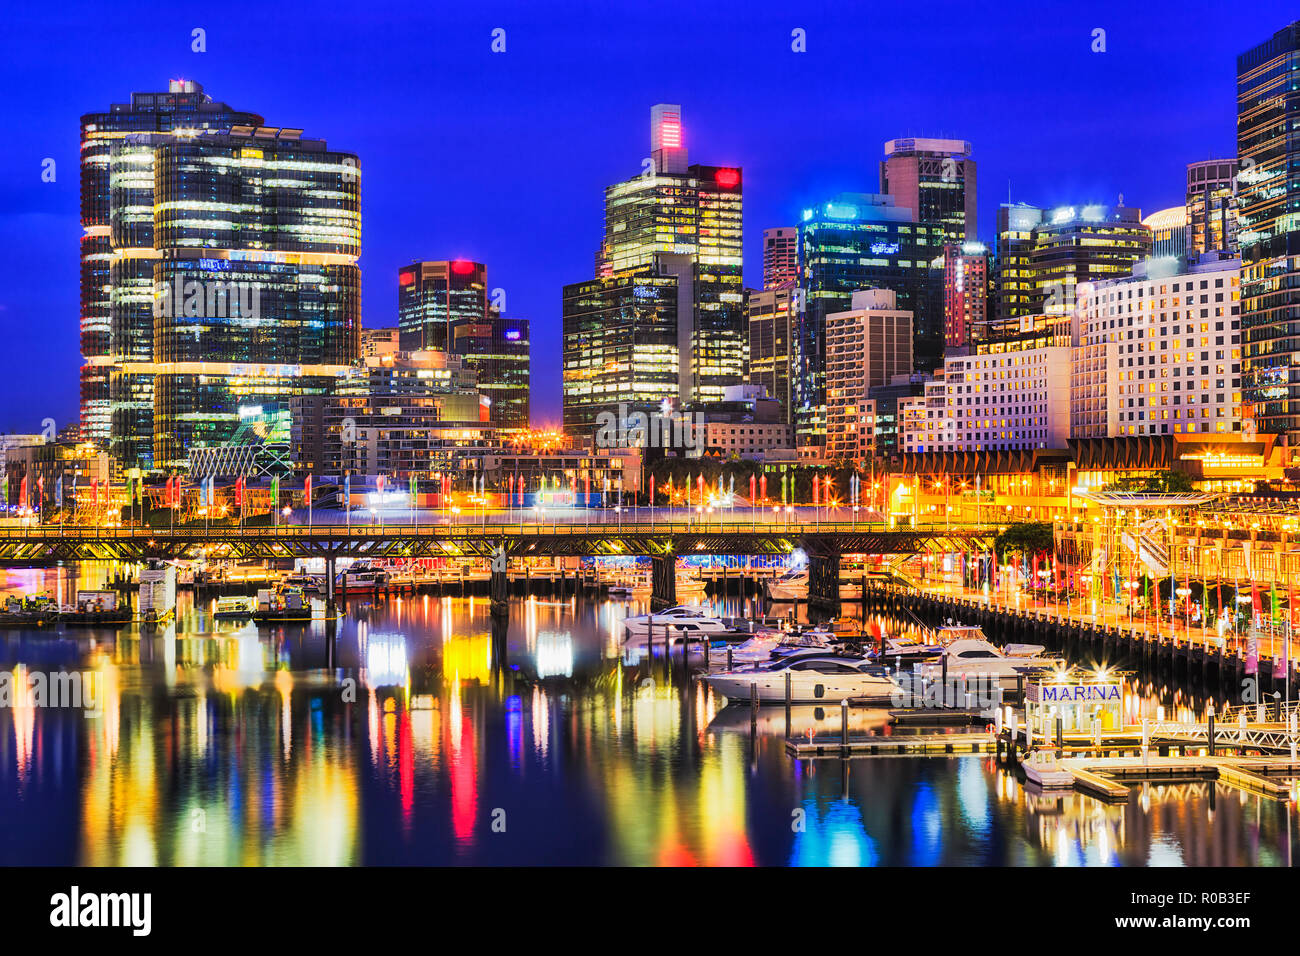 Waterfront of Sydney city CBD high-rise towers around Darling harbour with marina boats over Pyrmont bridge reflecting in still waters at sunset. - Stock Image